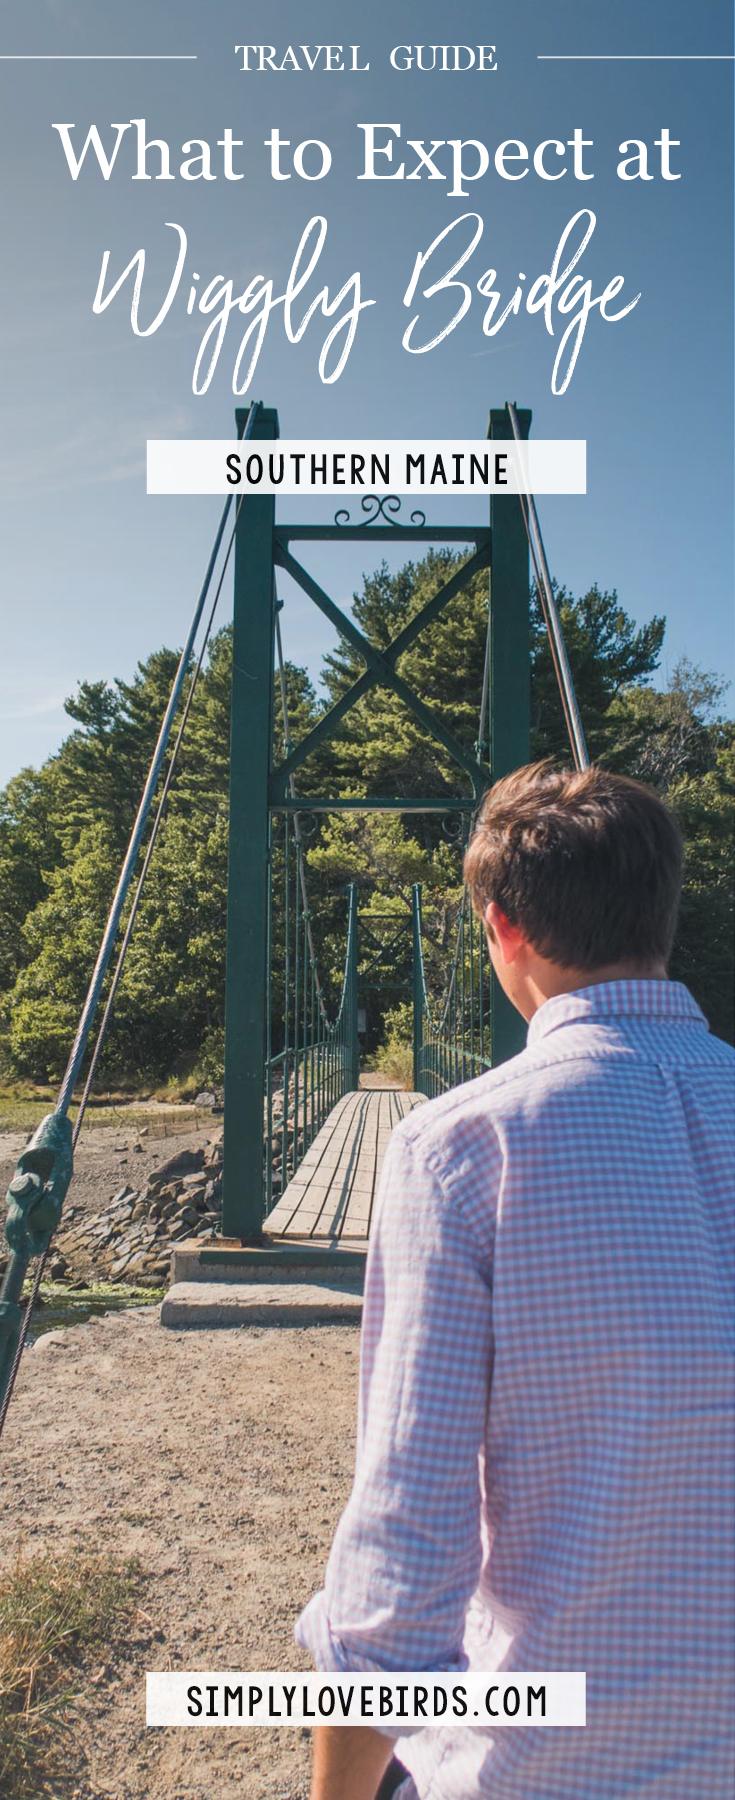 A Guide on What to Expect at the Wiggly Bridge in York (Southern Maine) / Simply Lovebirds